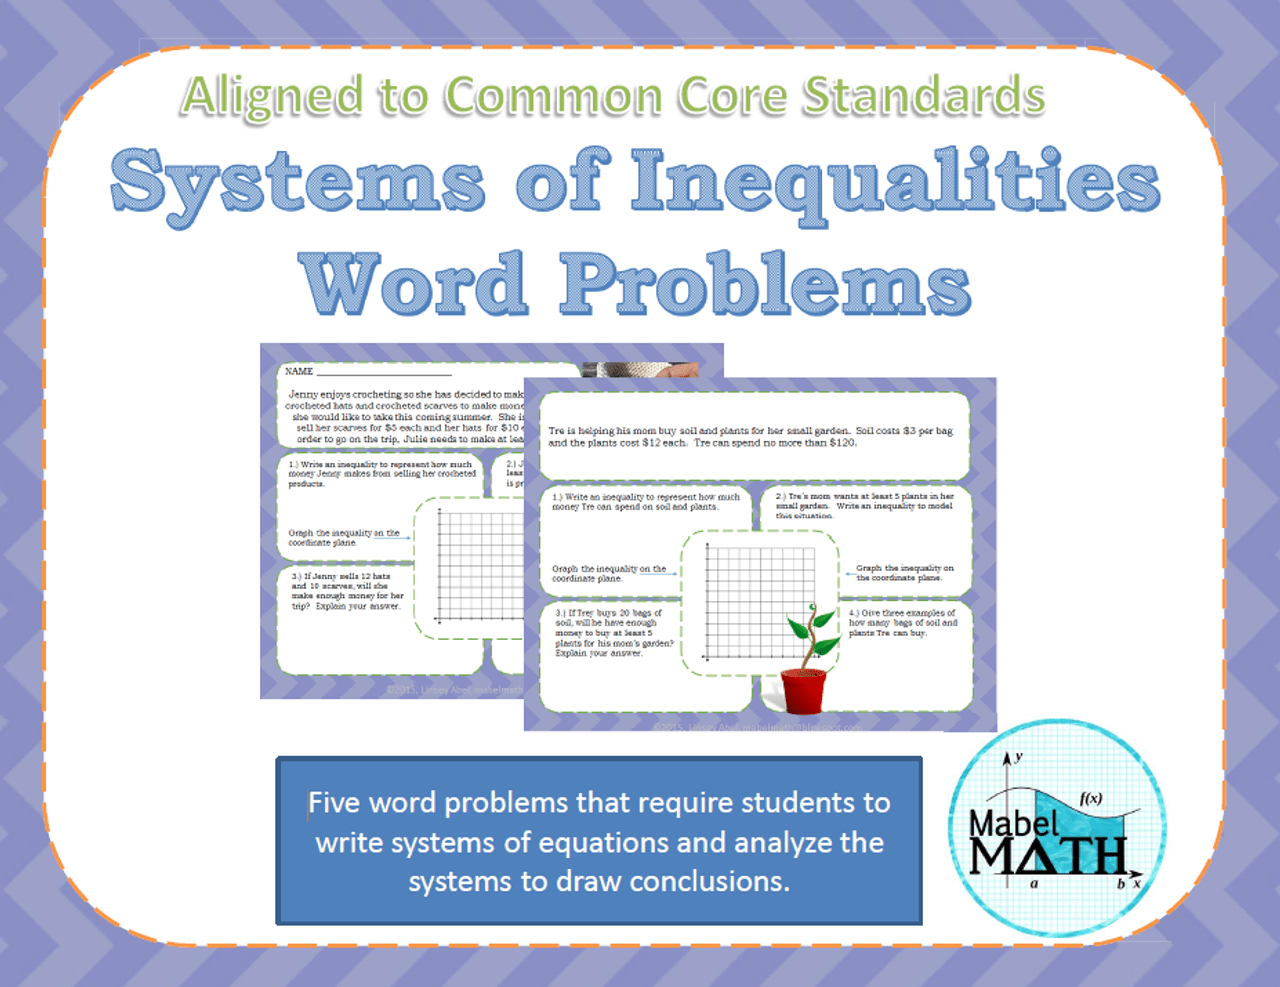 medium resolution of Systems of Inequalities Word Problems - Amped Up Learning